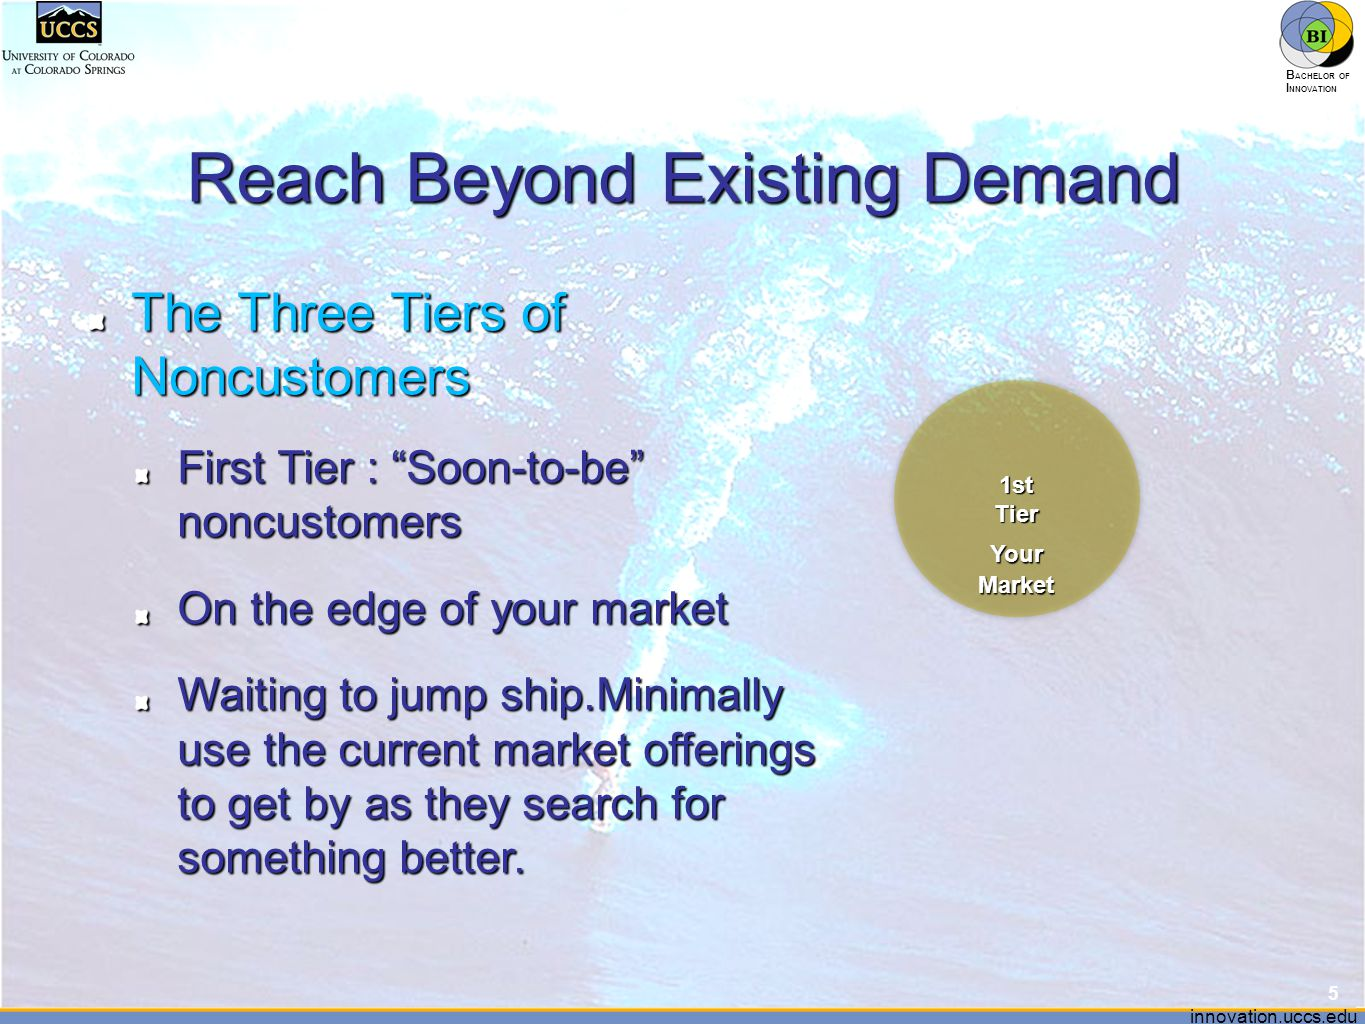 """innovation.uccs.edu B ACHELOR OF I NNOVATION ™ Reach Beyond Existing Demand 5 1stTier YourMarket The Three Tiers of Noncustomers First Tier : """"Soon-to"""